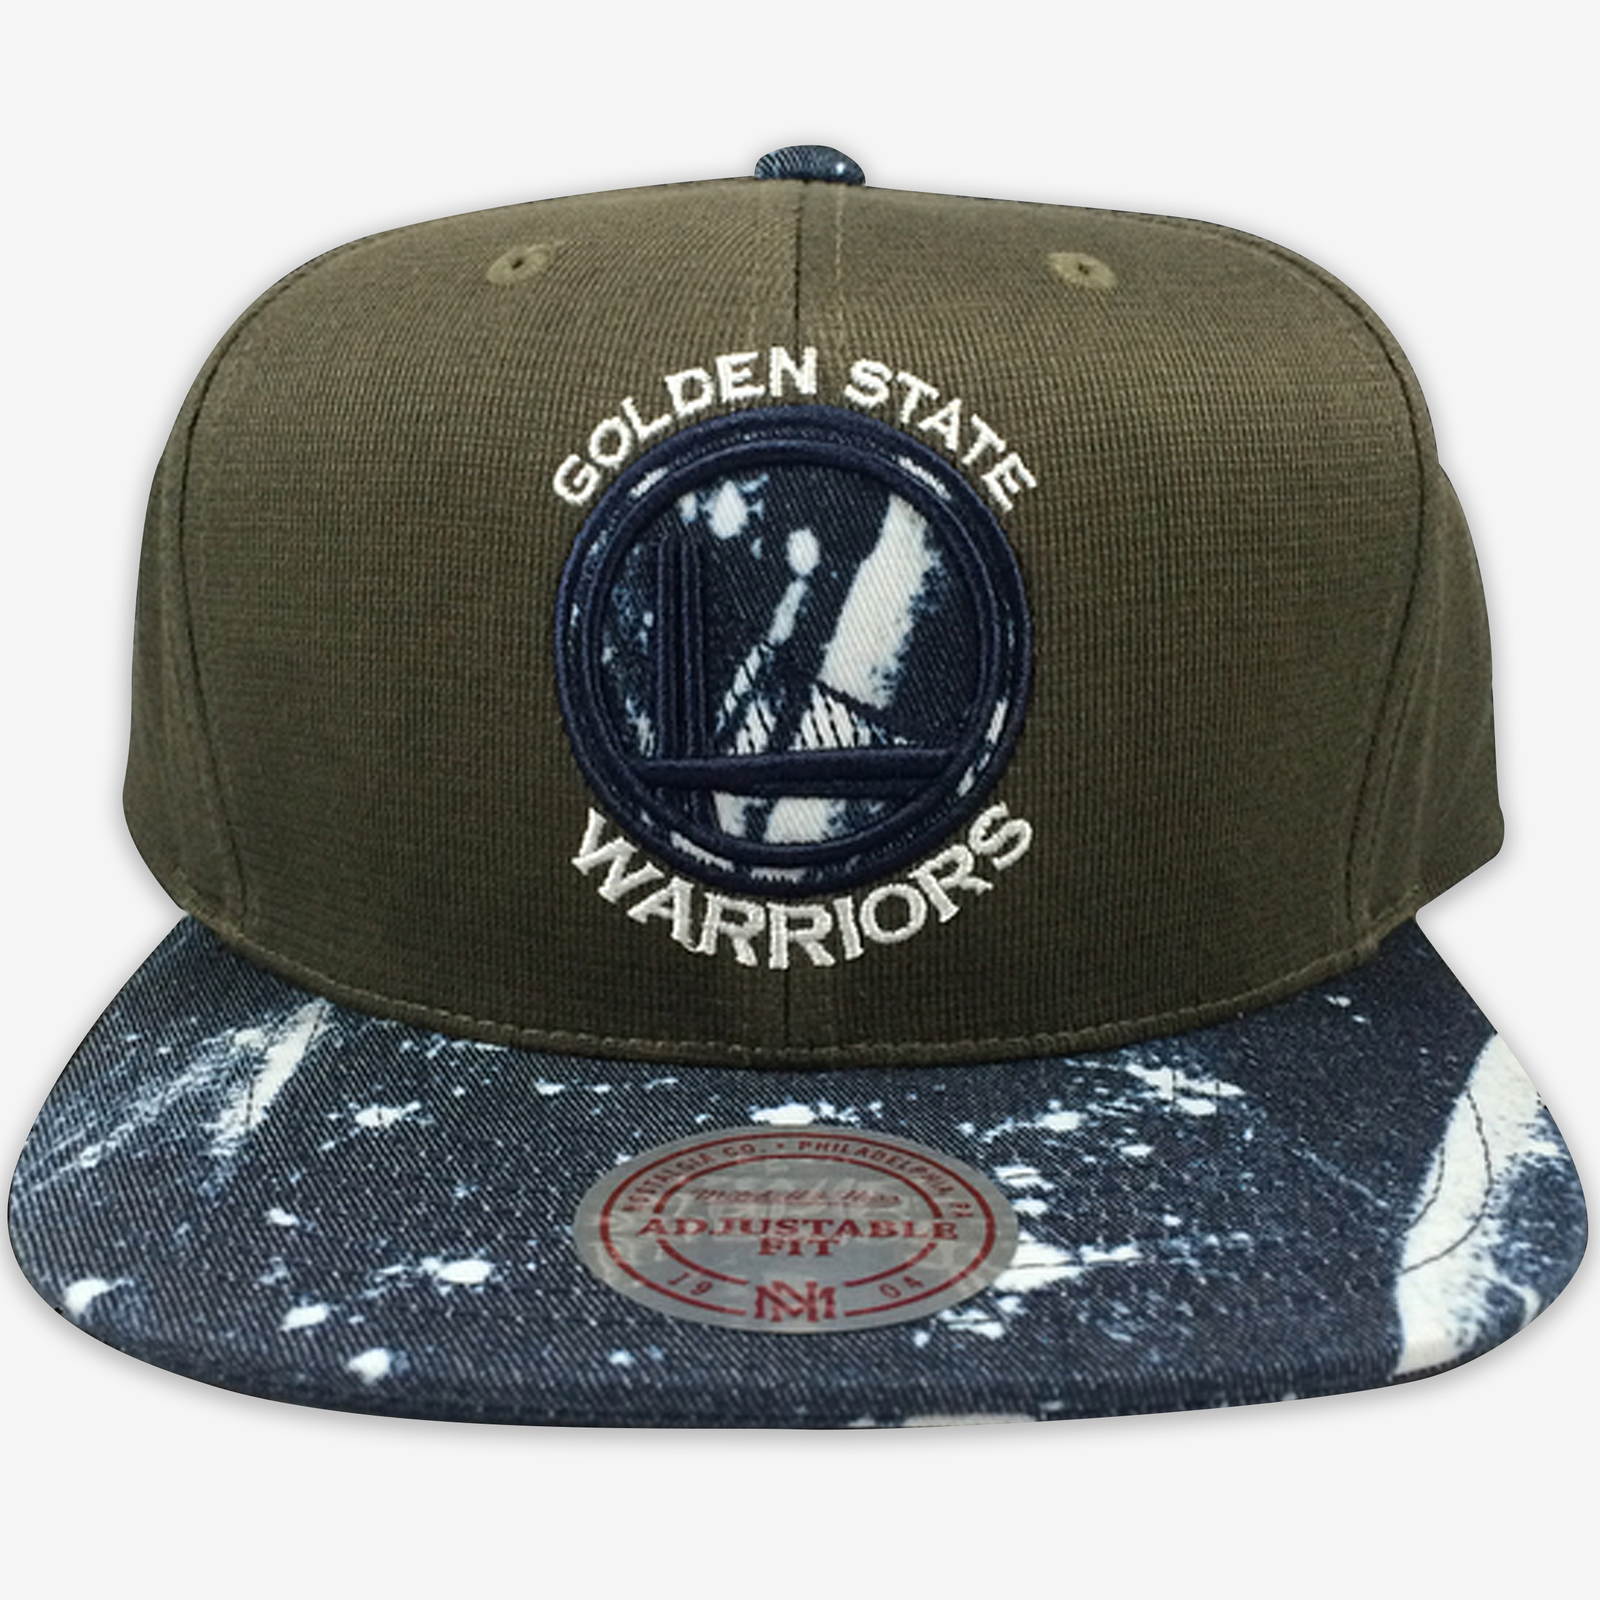 Golden State Warriors Mitchell & Ness Strapback